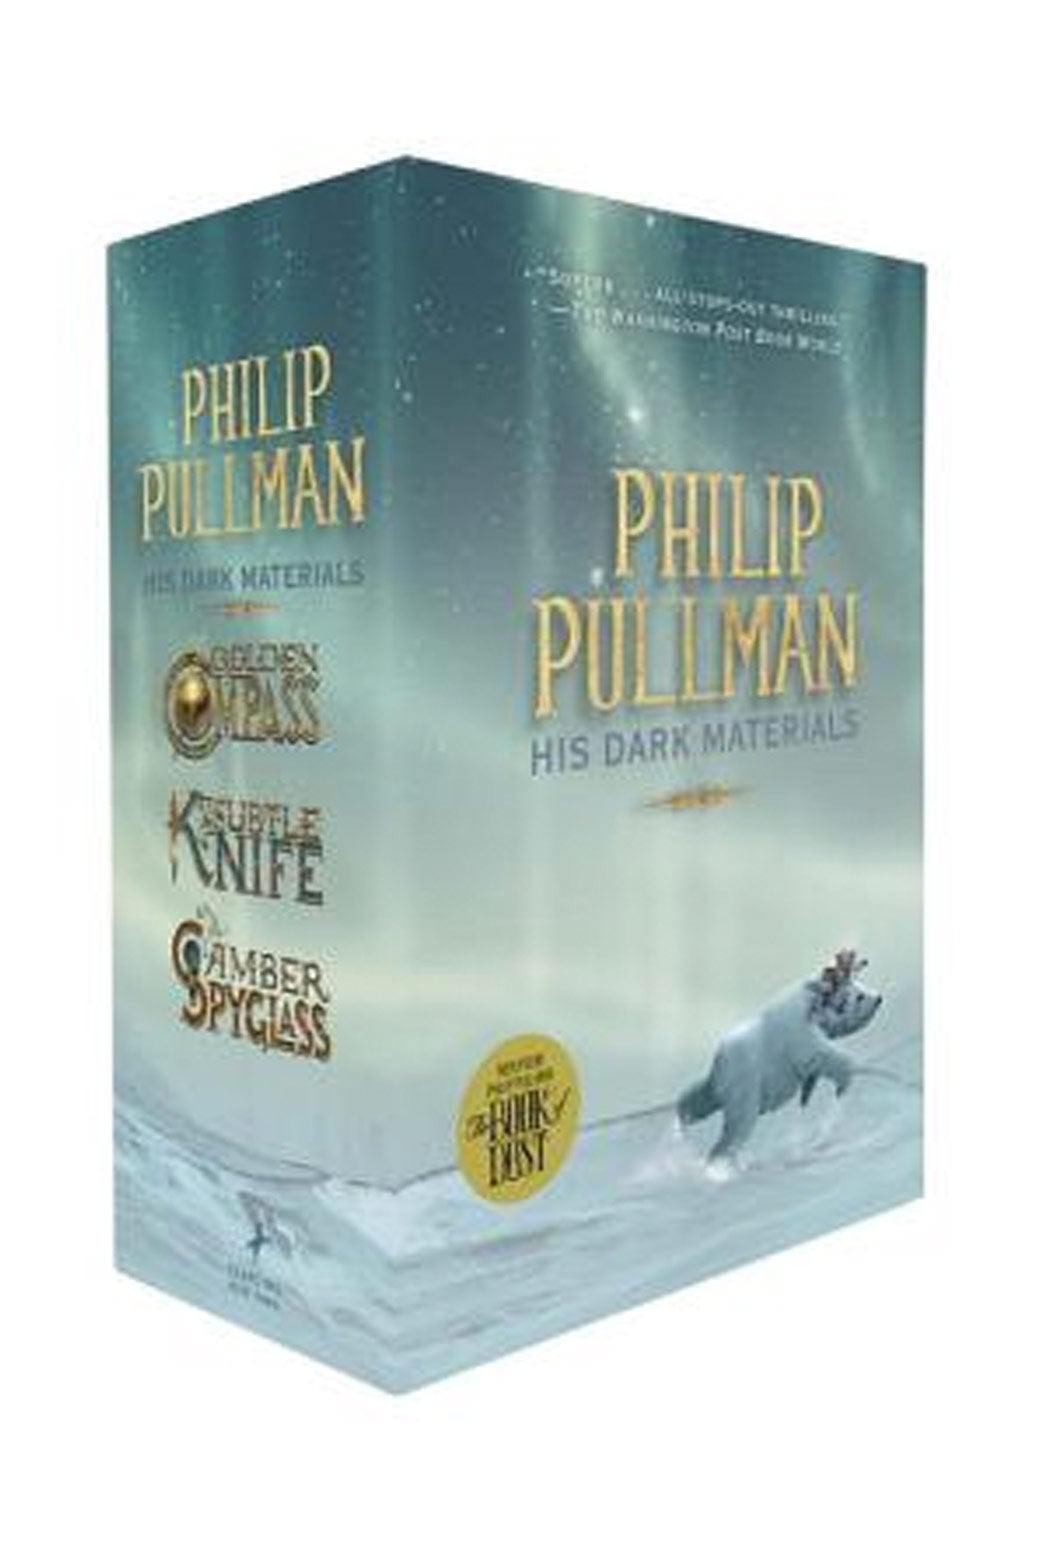 His Dark Materials Trilogy by Philip Pullman.